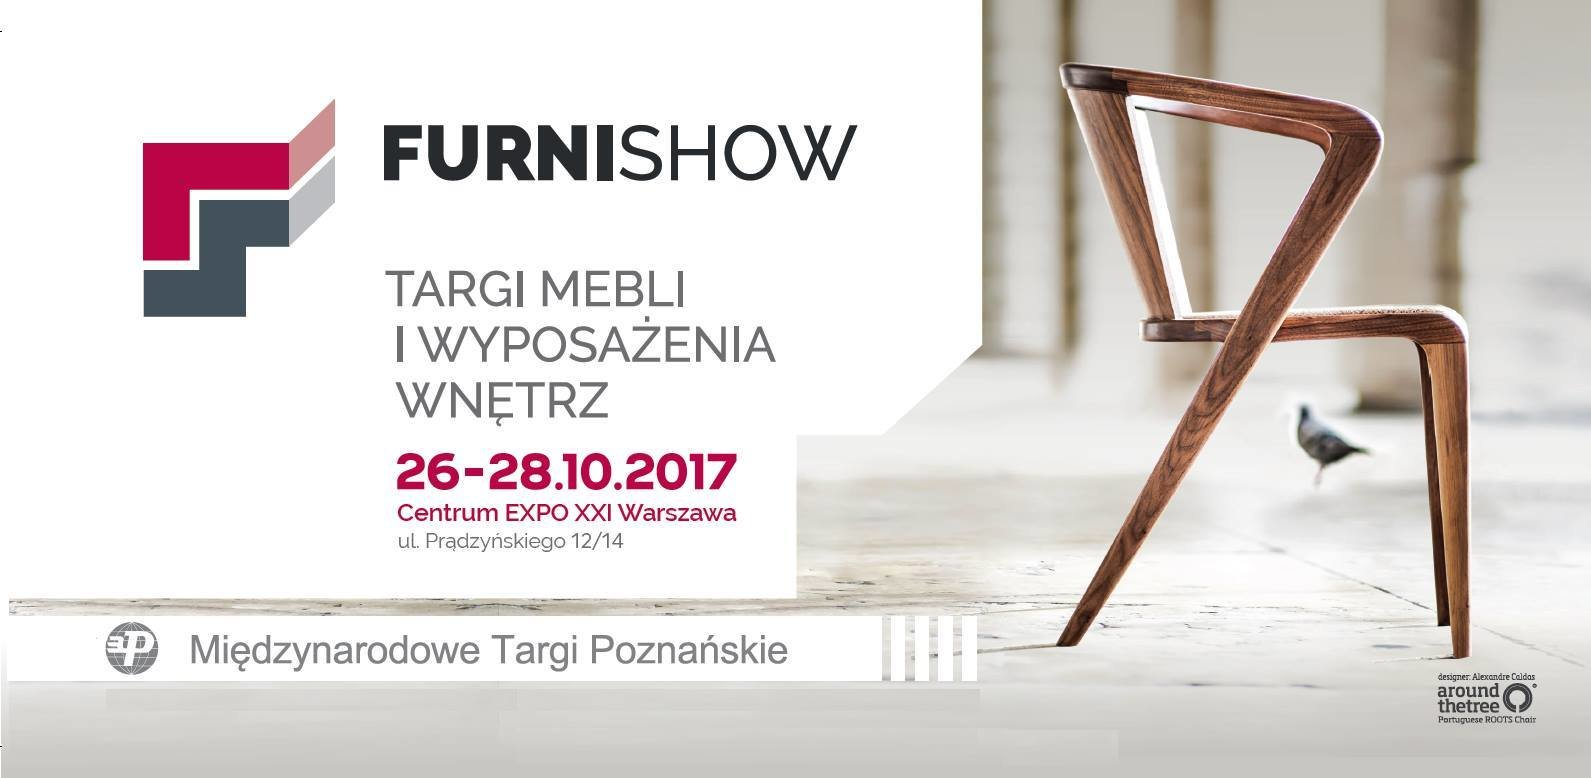 FURNISHOW - Homebook Patronem